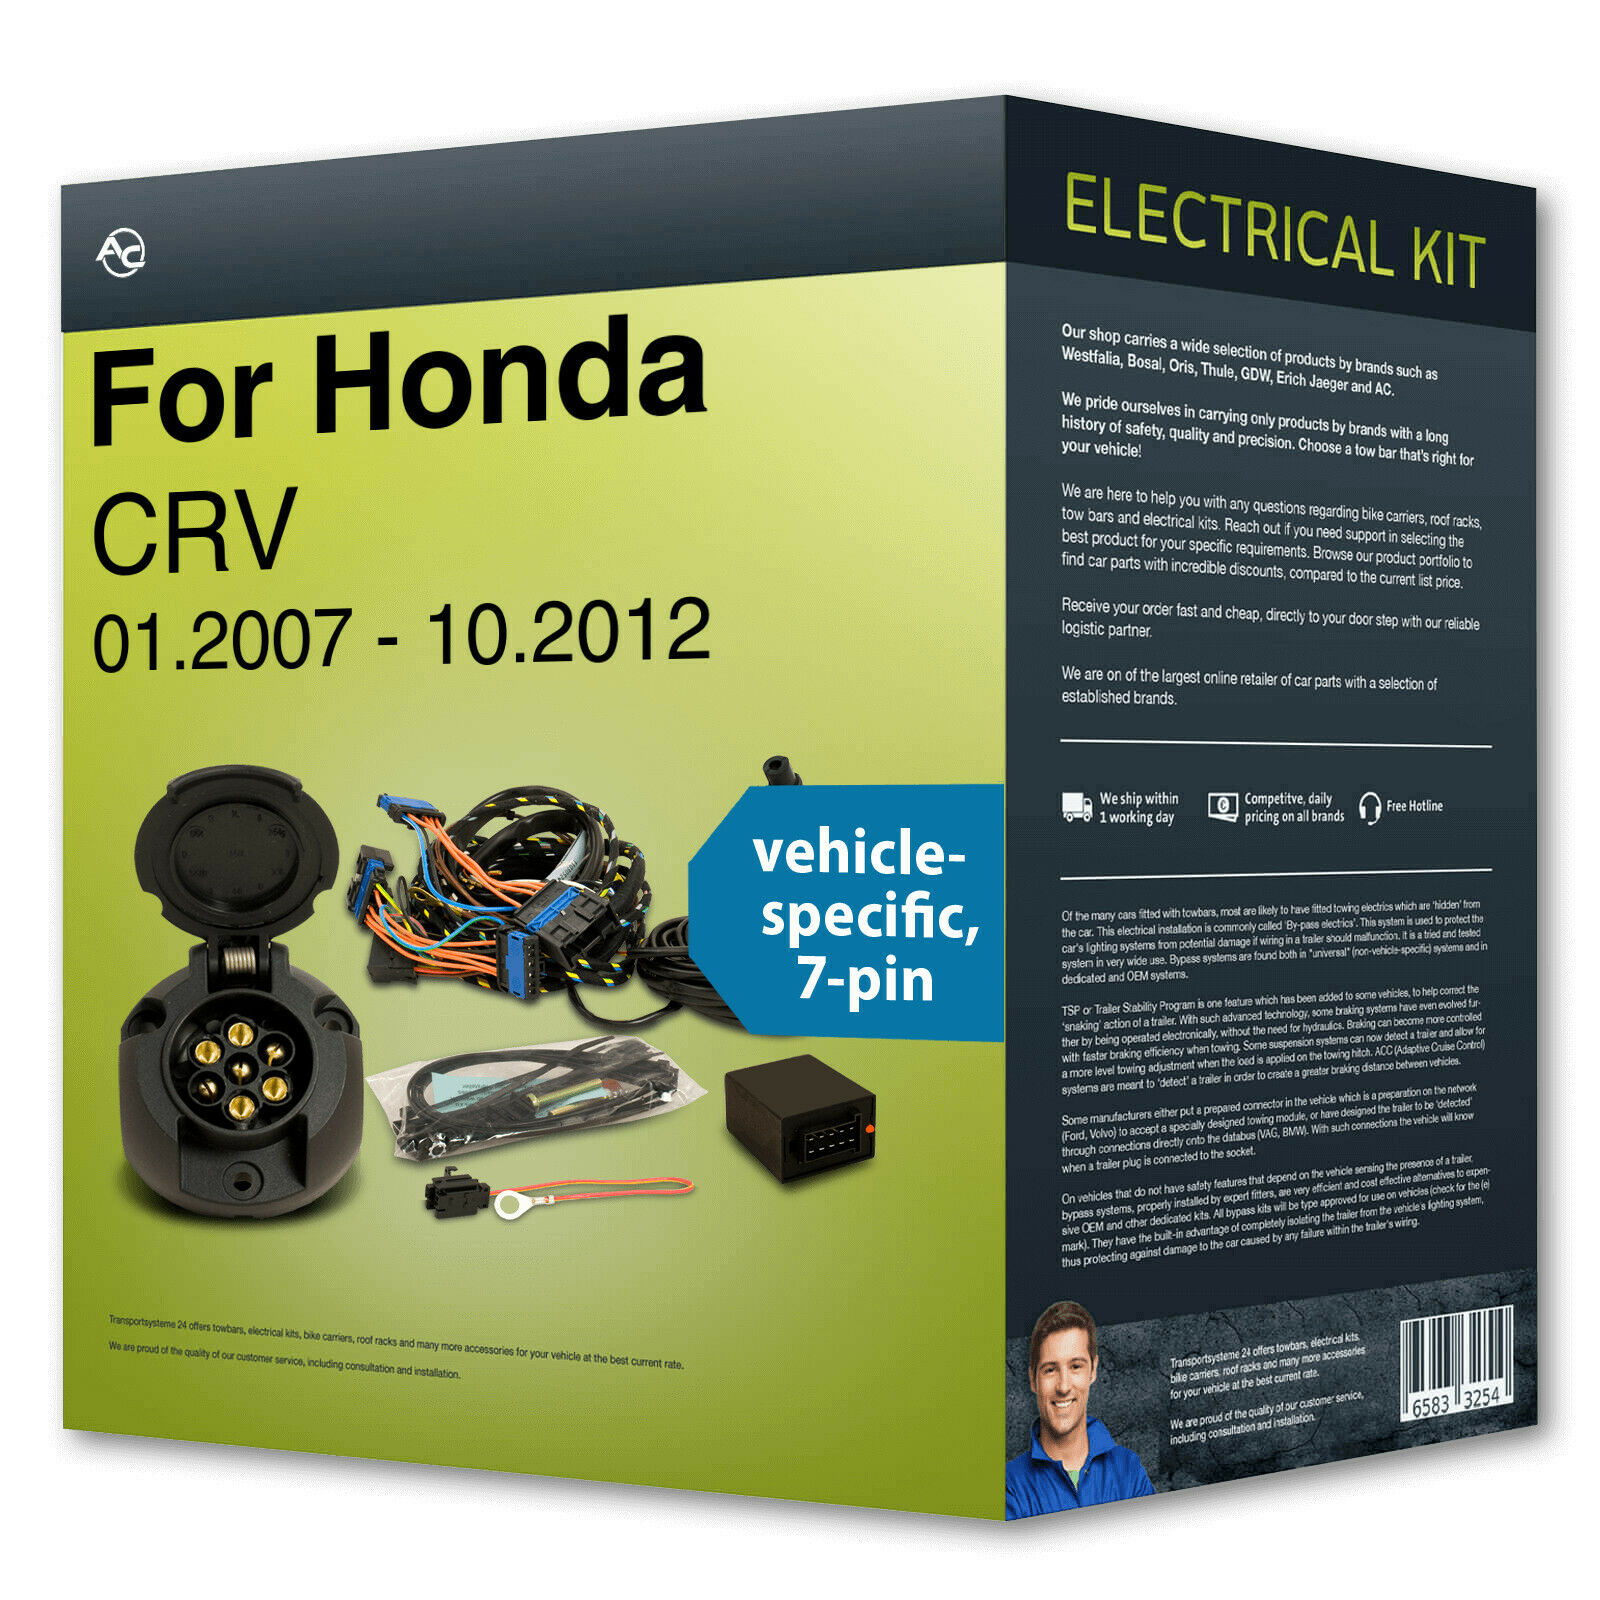 Towbar Wiring Kit 7 Pin Specific Suitable For Honda Crv 07 New Ac 1 Of 2 See More